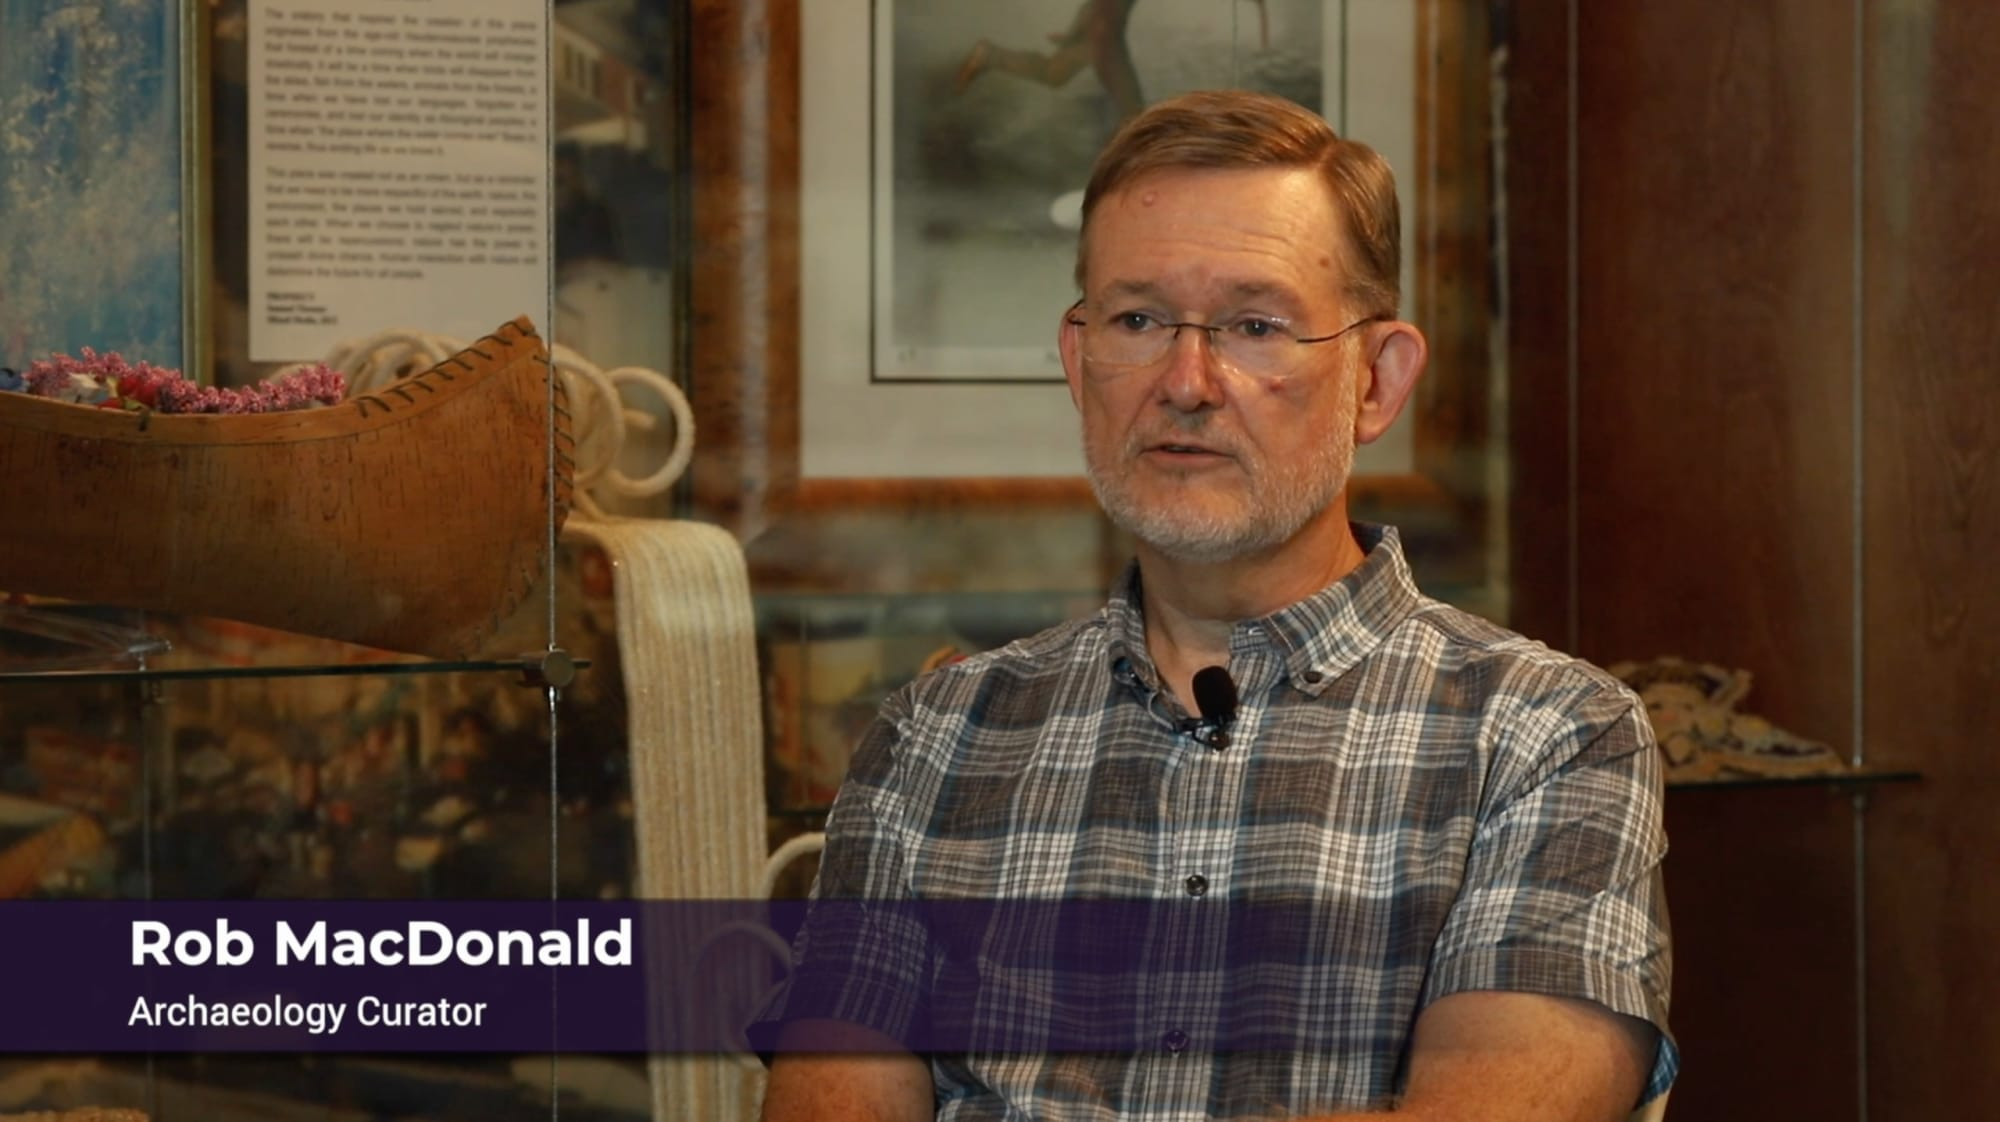 Rob MacDonald - Archaeology Curator